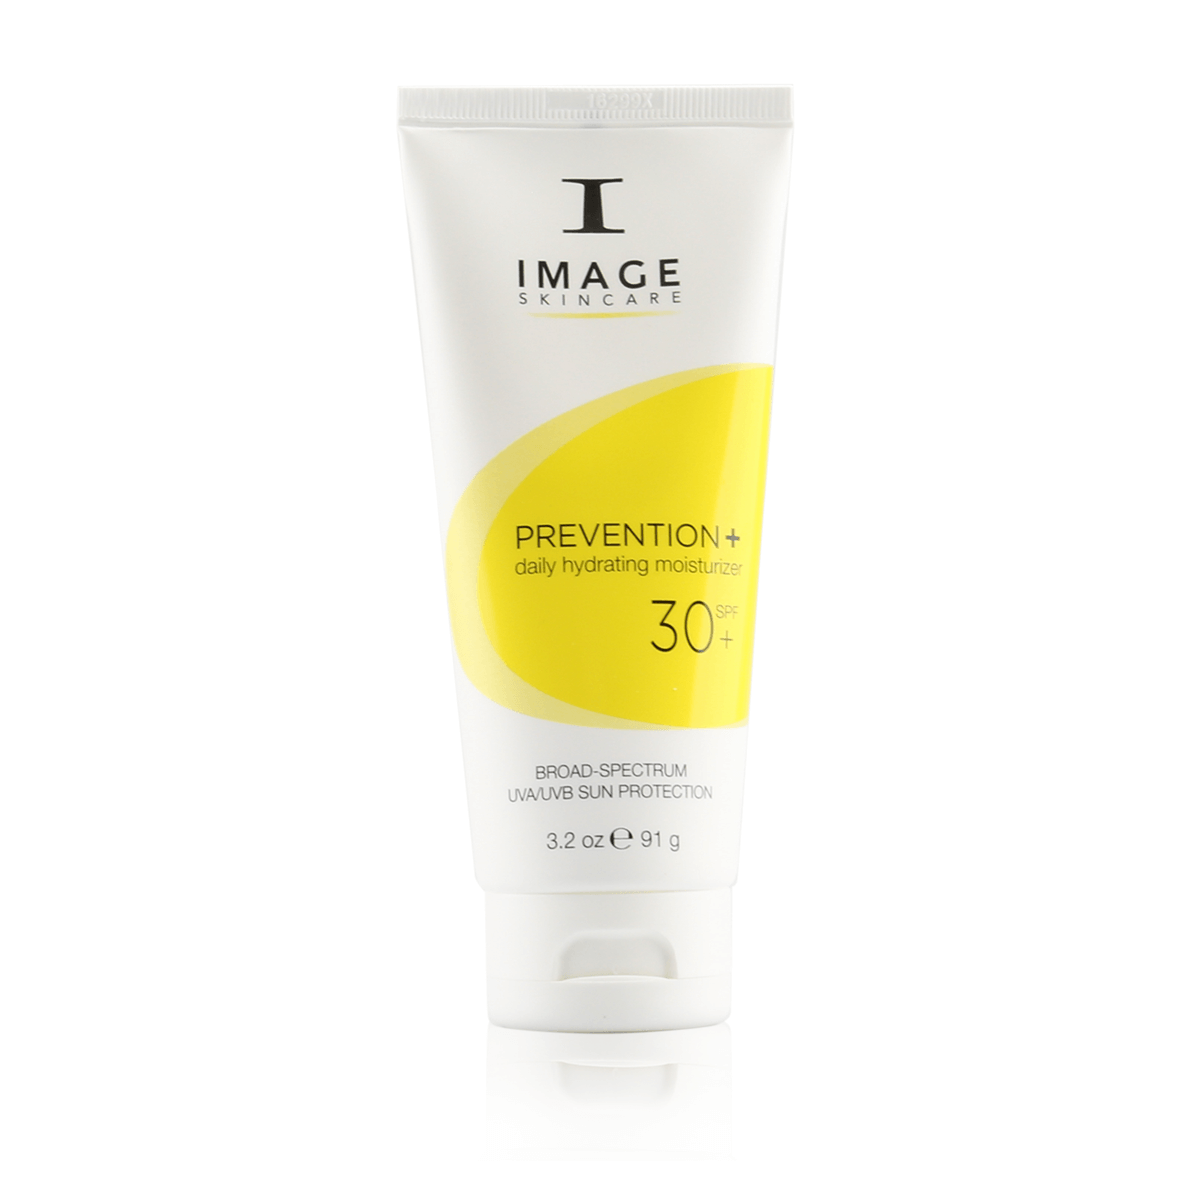 Image Hydrating Sunscreen SPF 30